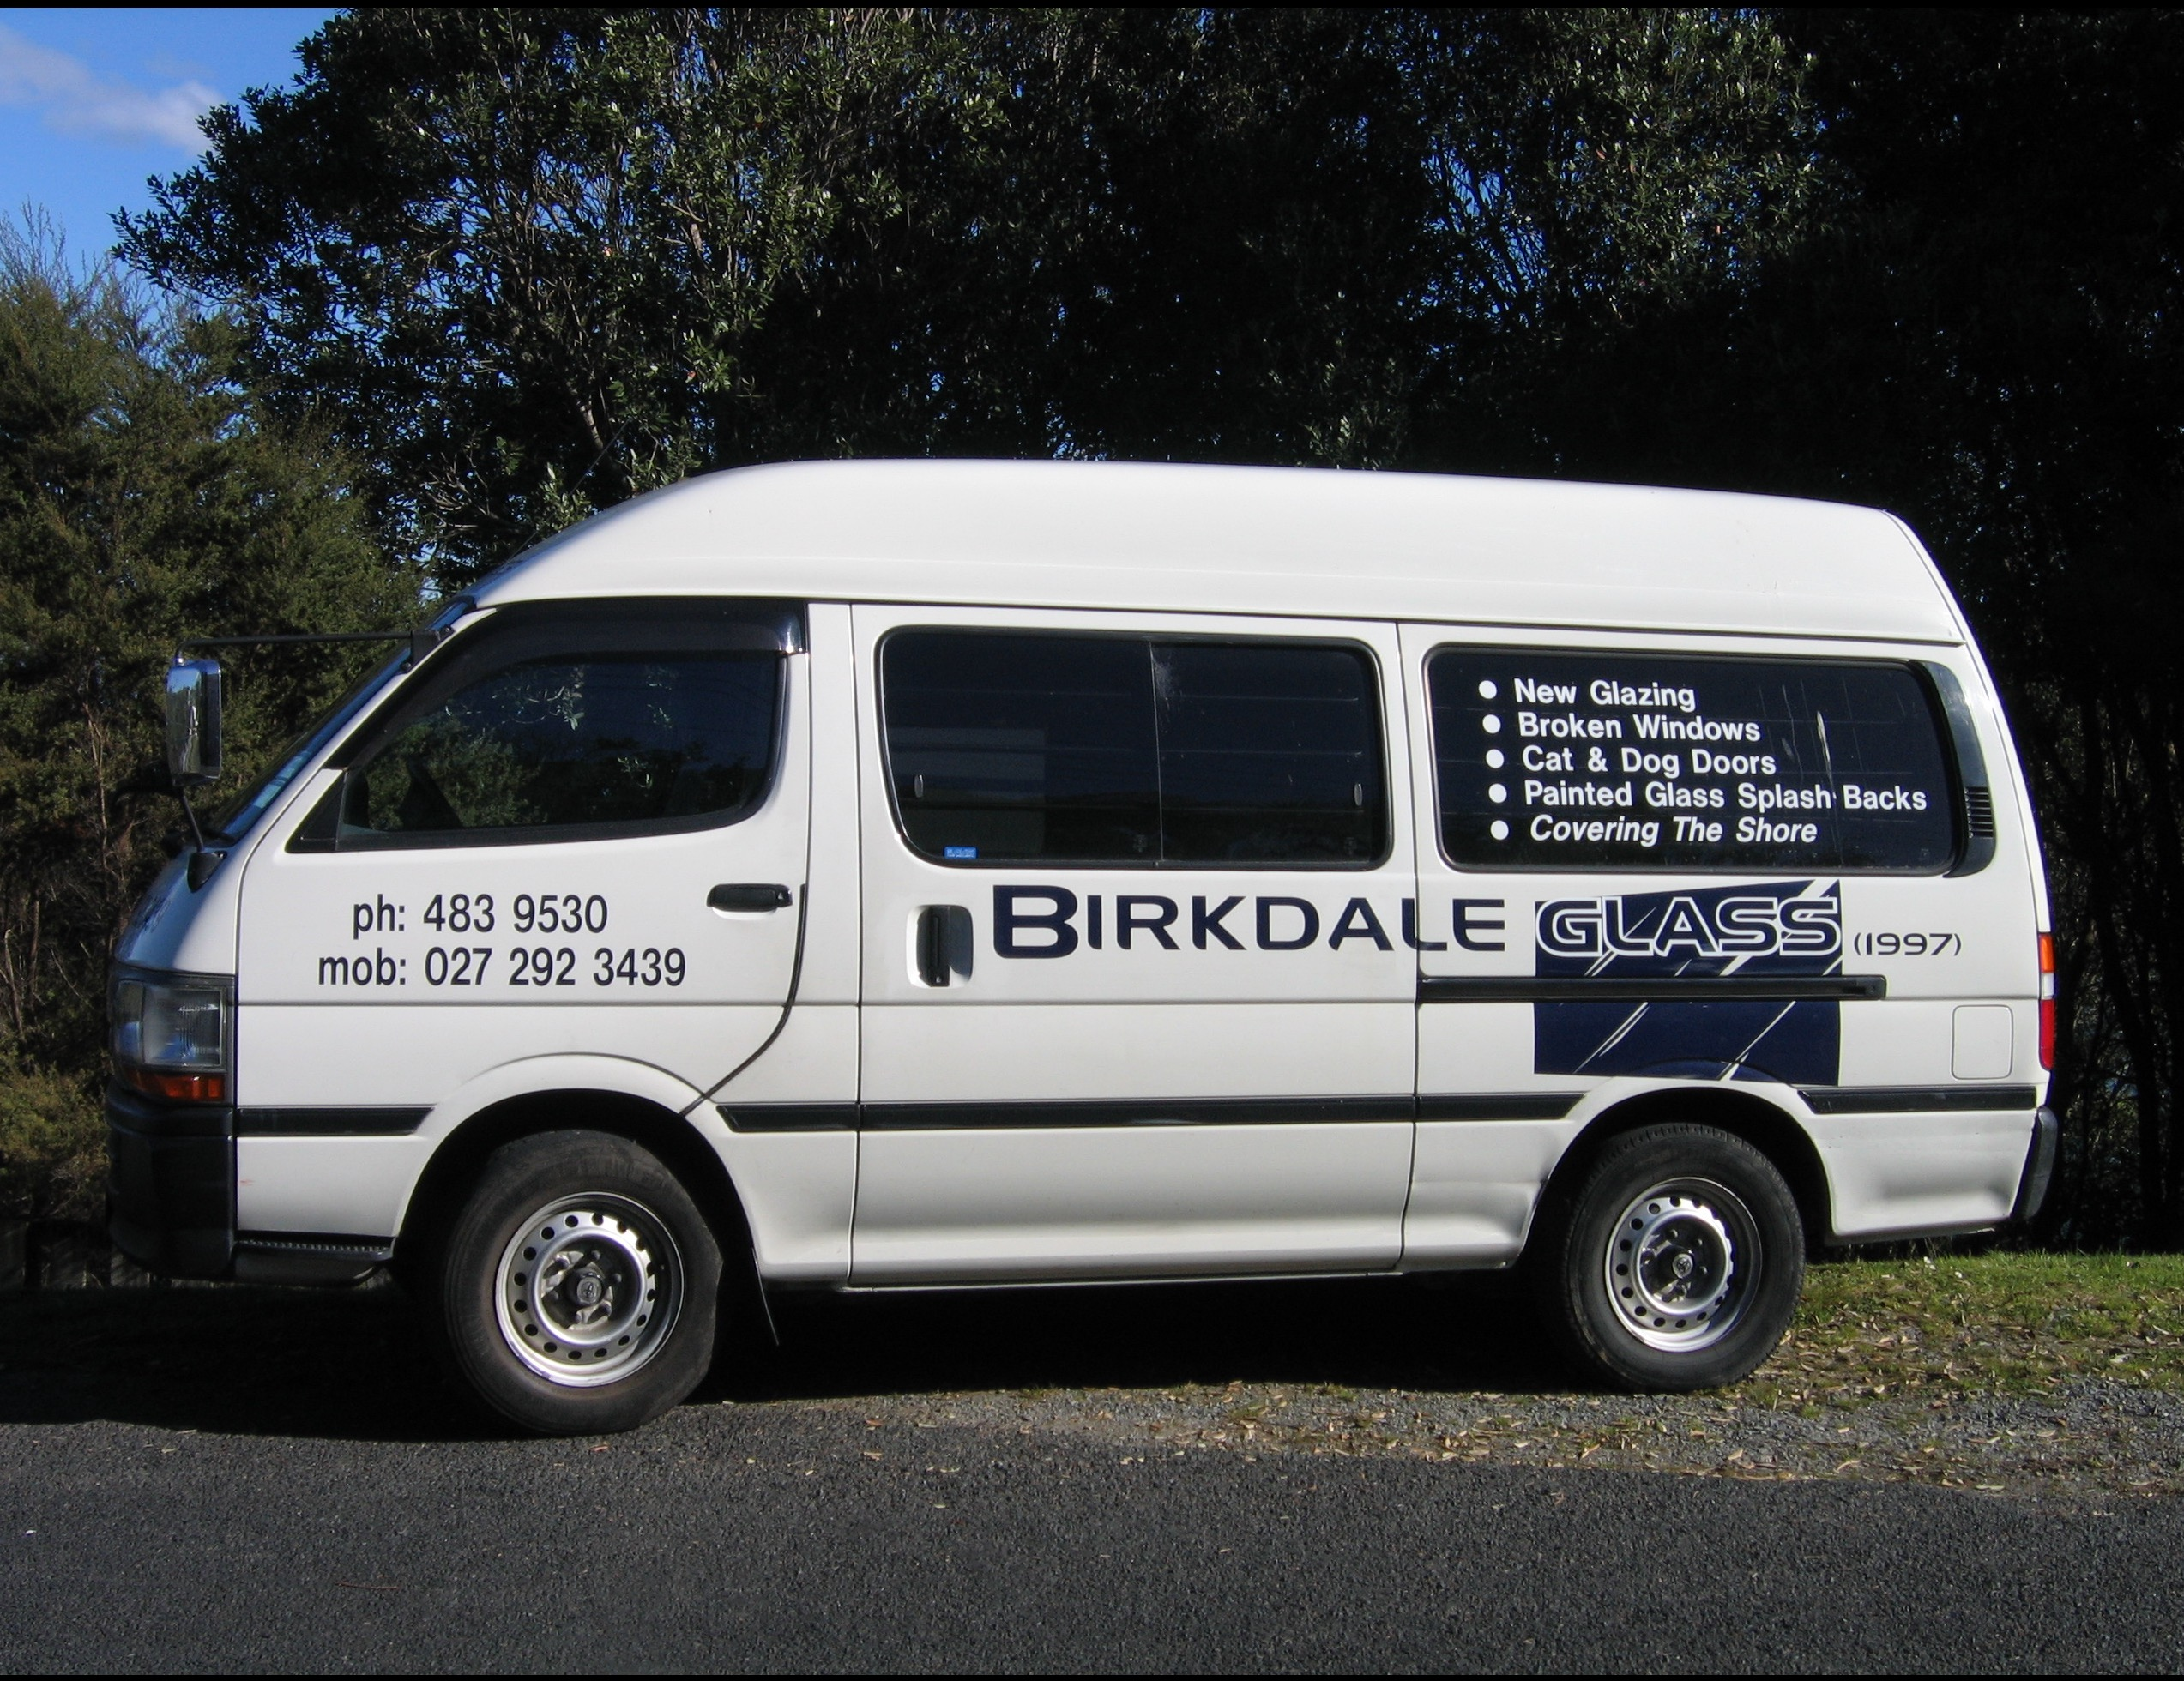 Birkdale Glass (1997) Ltd